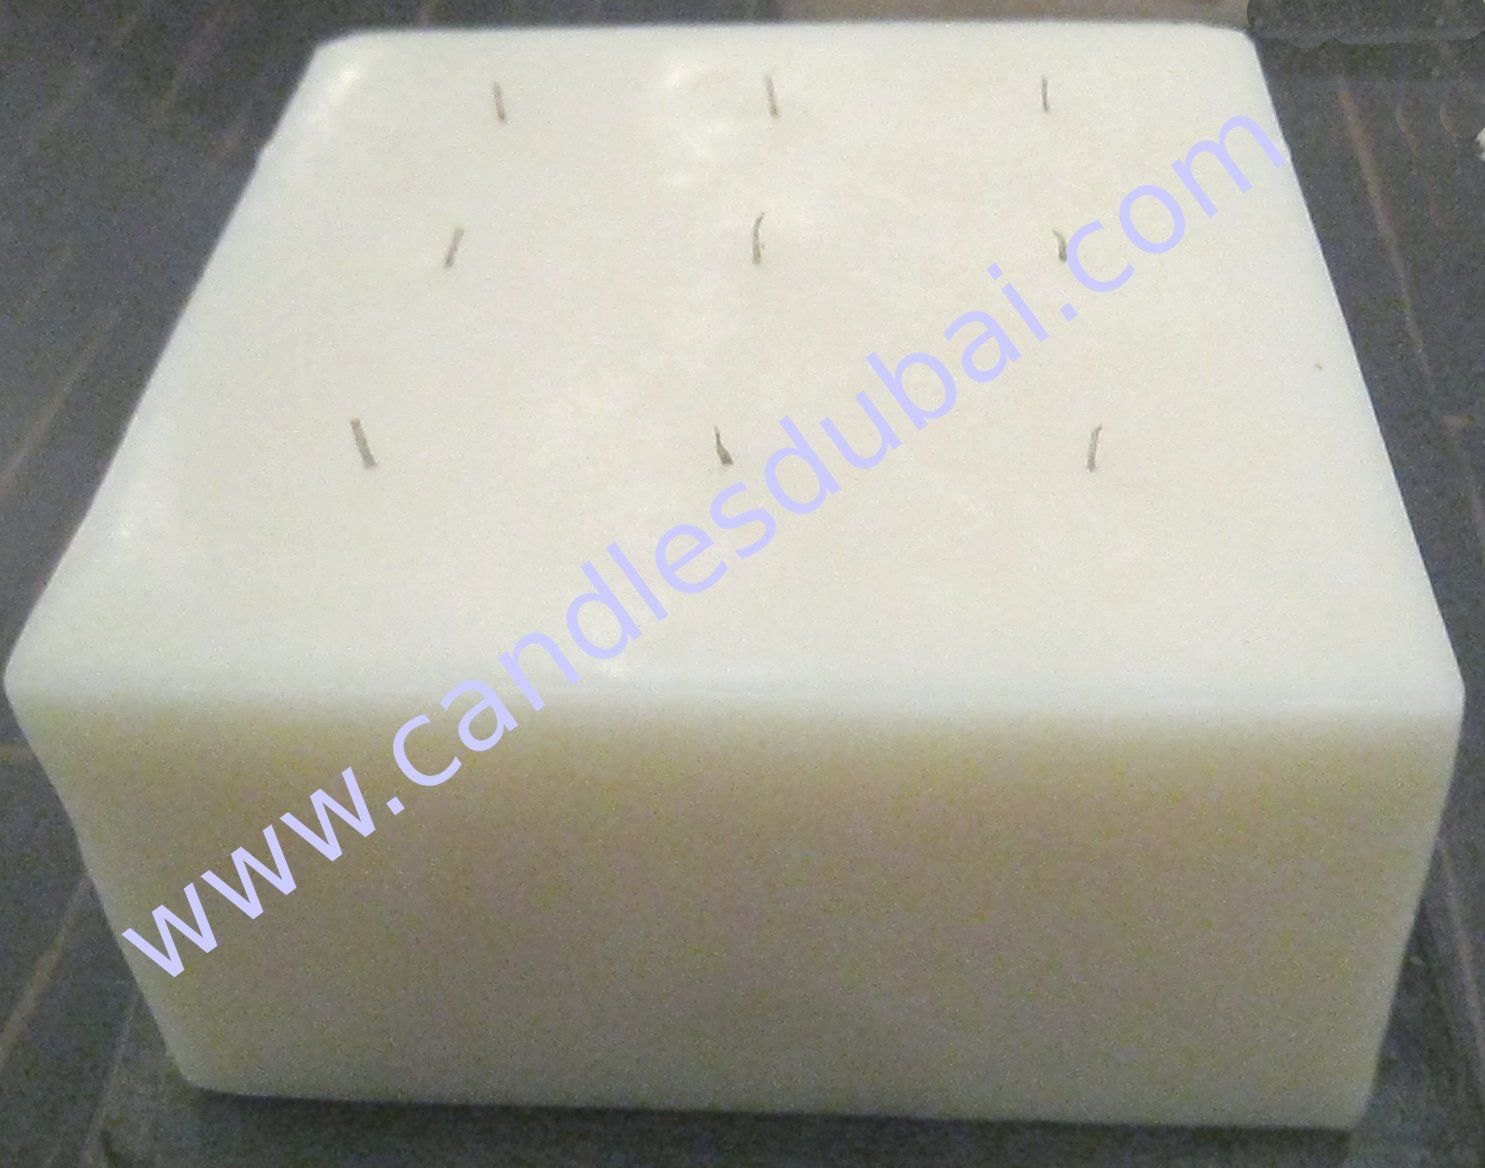 Multi Wick Candles Giant Square Block Candle With Multiple Wick Candles Candles